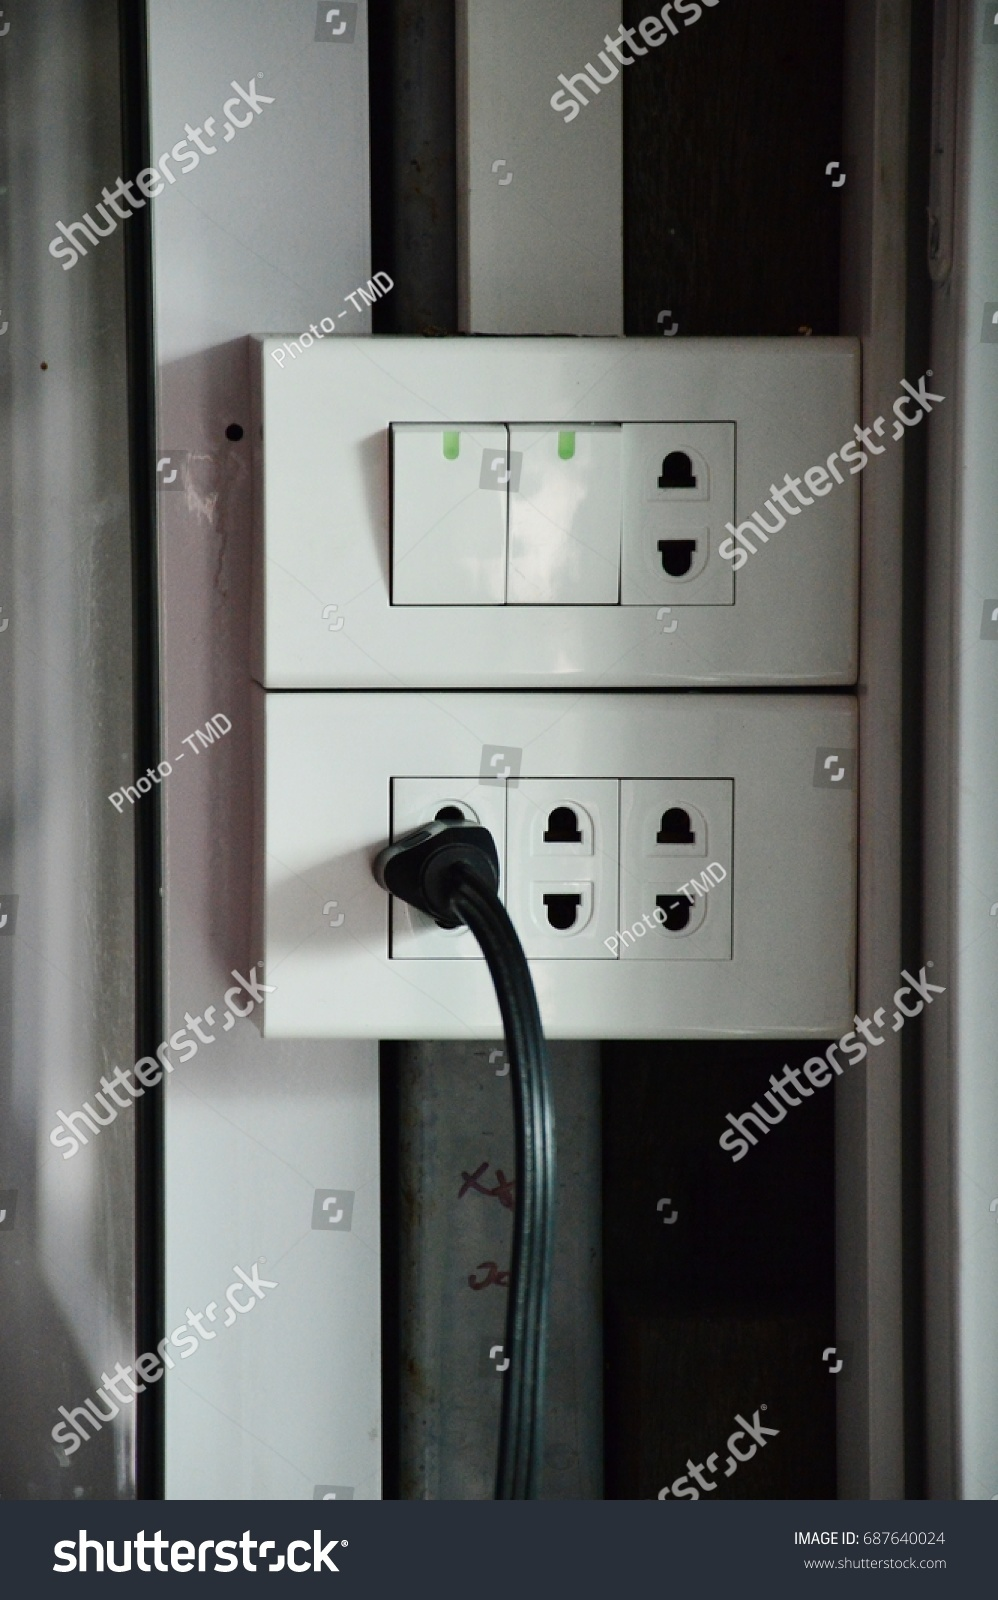 Switch Plug Electric Wire Home Stock Photo (Edit Now) 687640024 ...